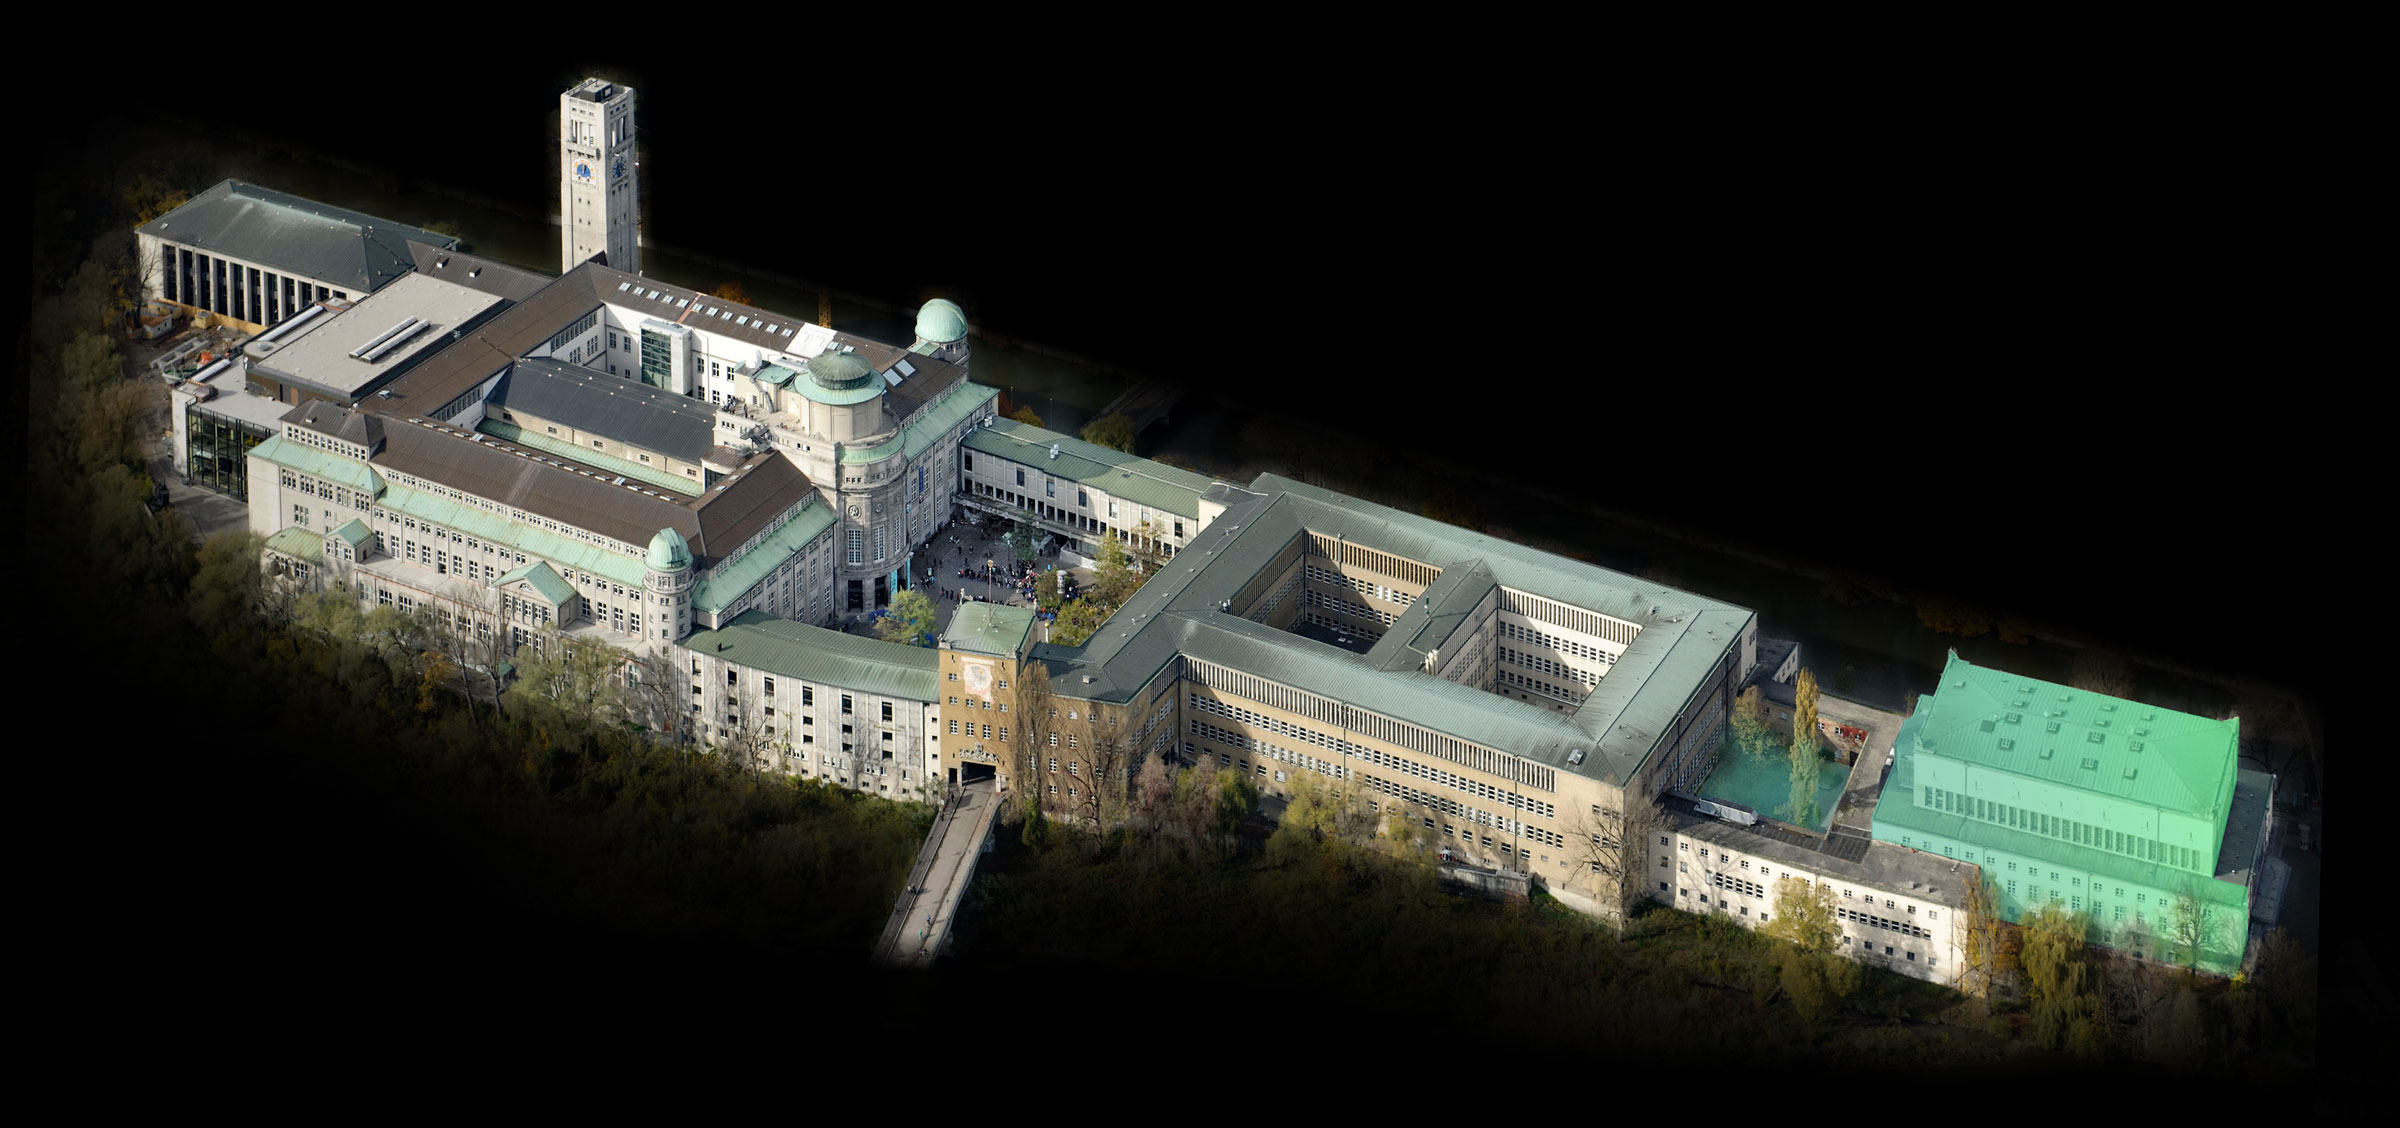 Arial view of Deutsches Museum